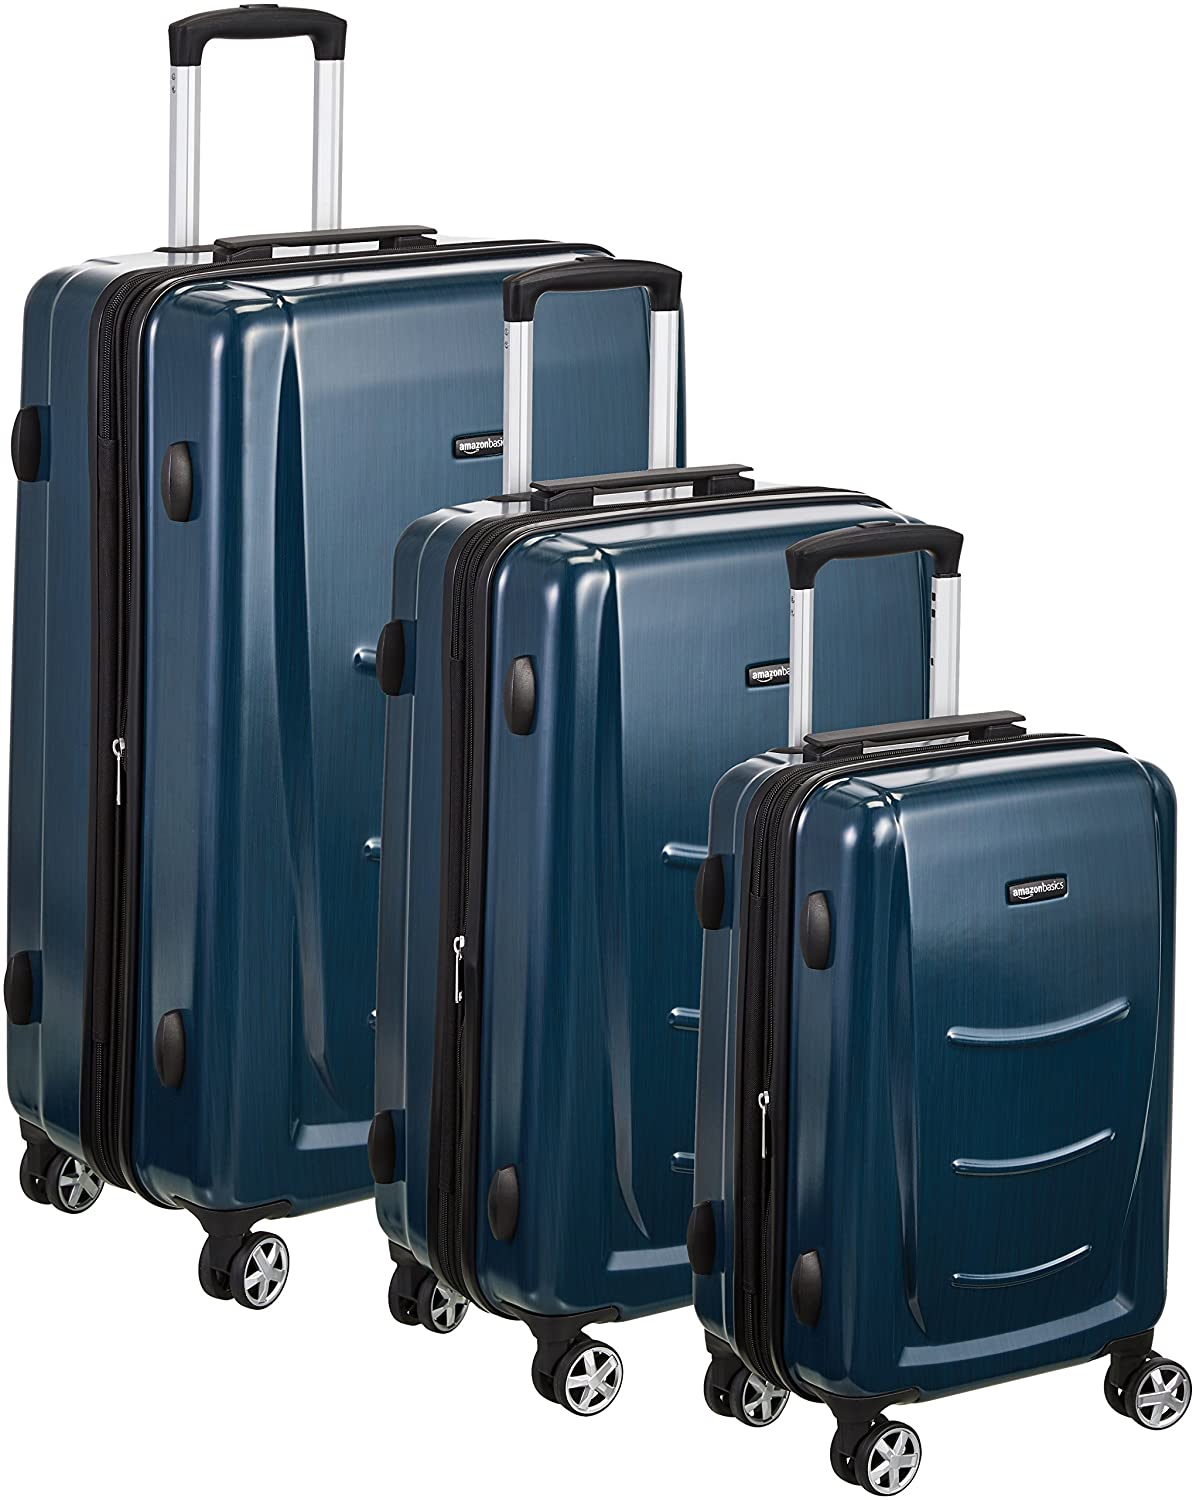 AmazonBasics Hardshell Spinner Luggage, Navy Blue N991